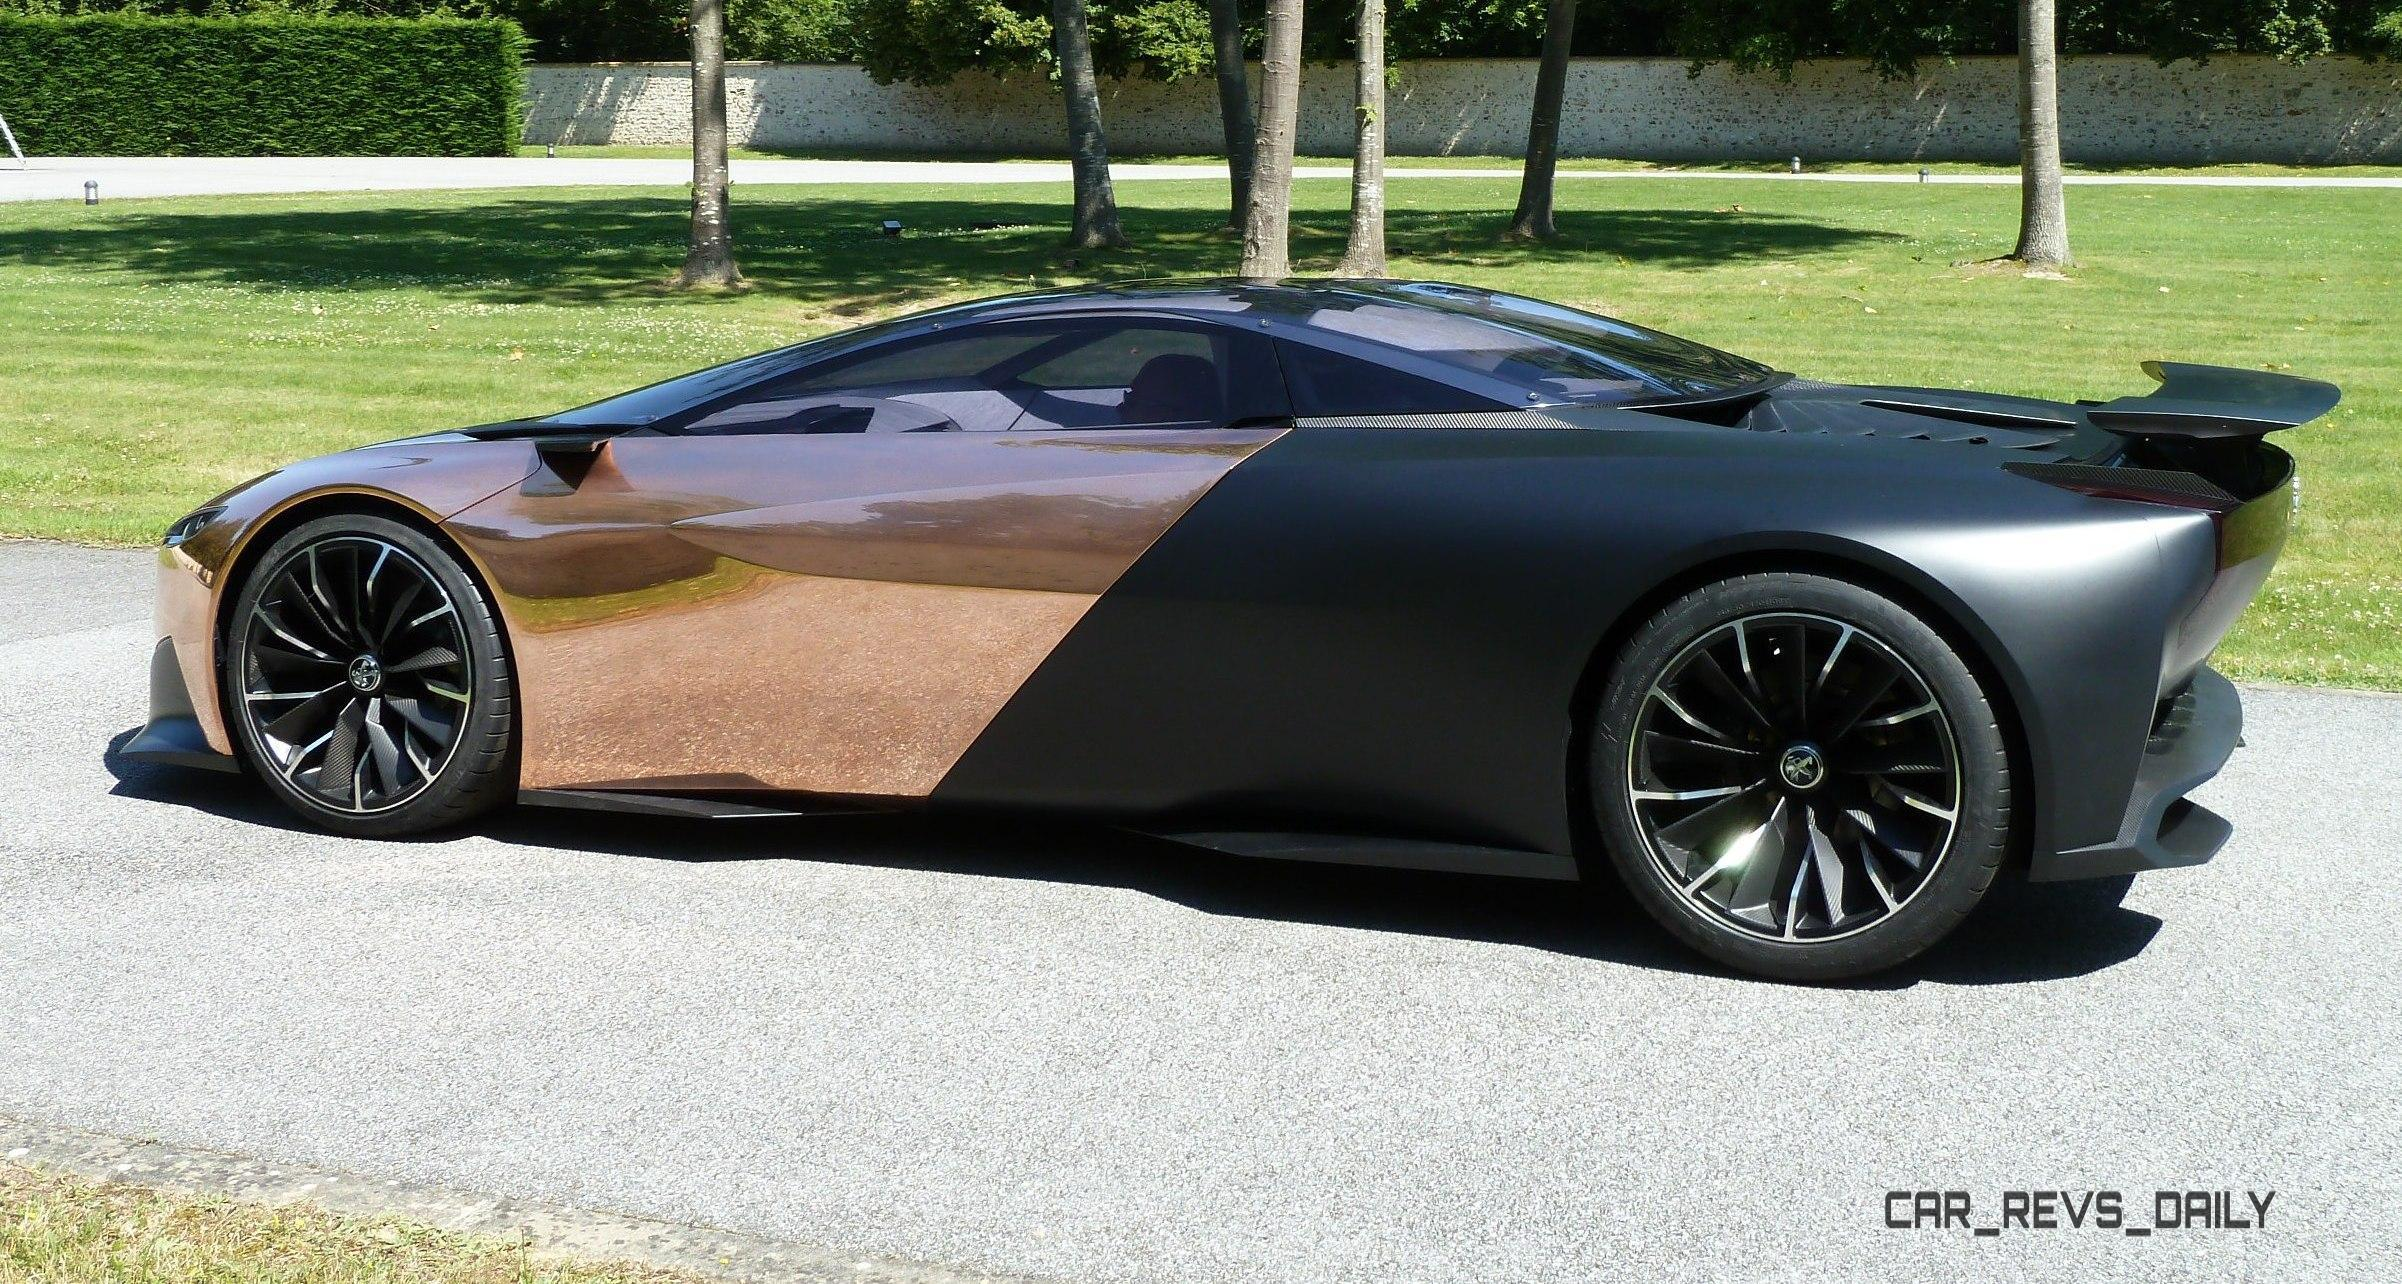 Concept Flashback - 2012 Peugeot ONYX Is Mixed-Media Hypercar Delight 1